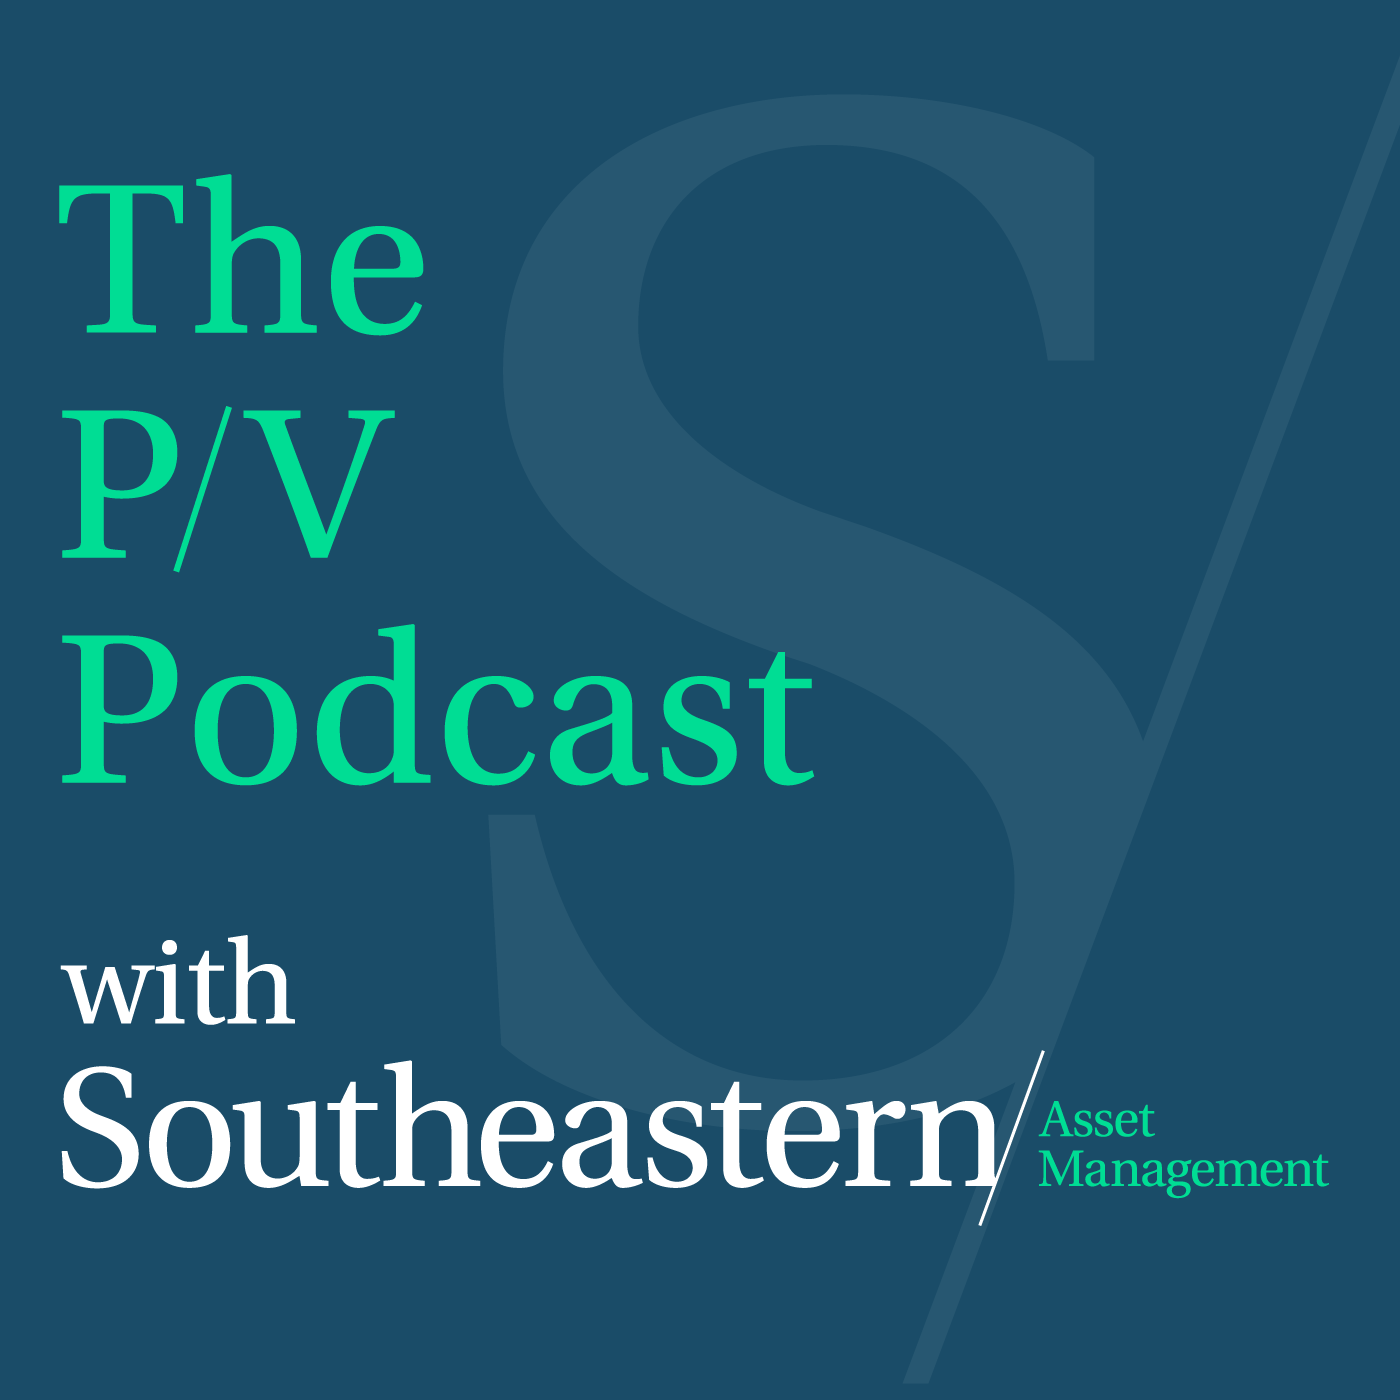 The Price-to-Value Podcast with Southeastern Asset Management